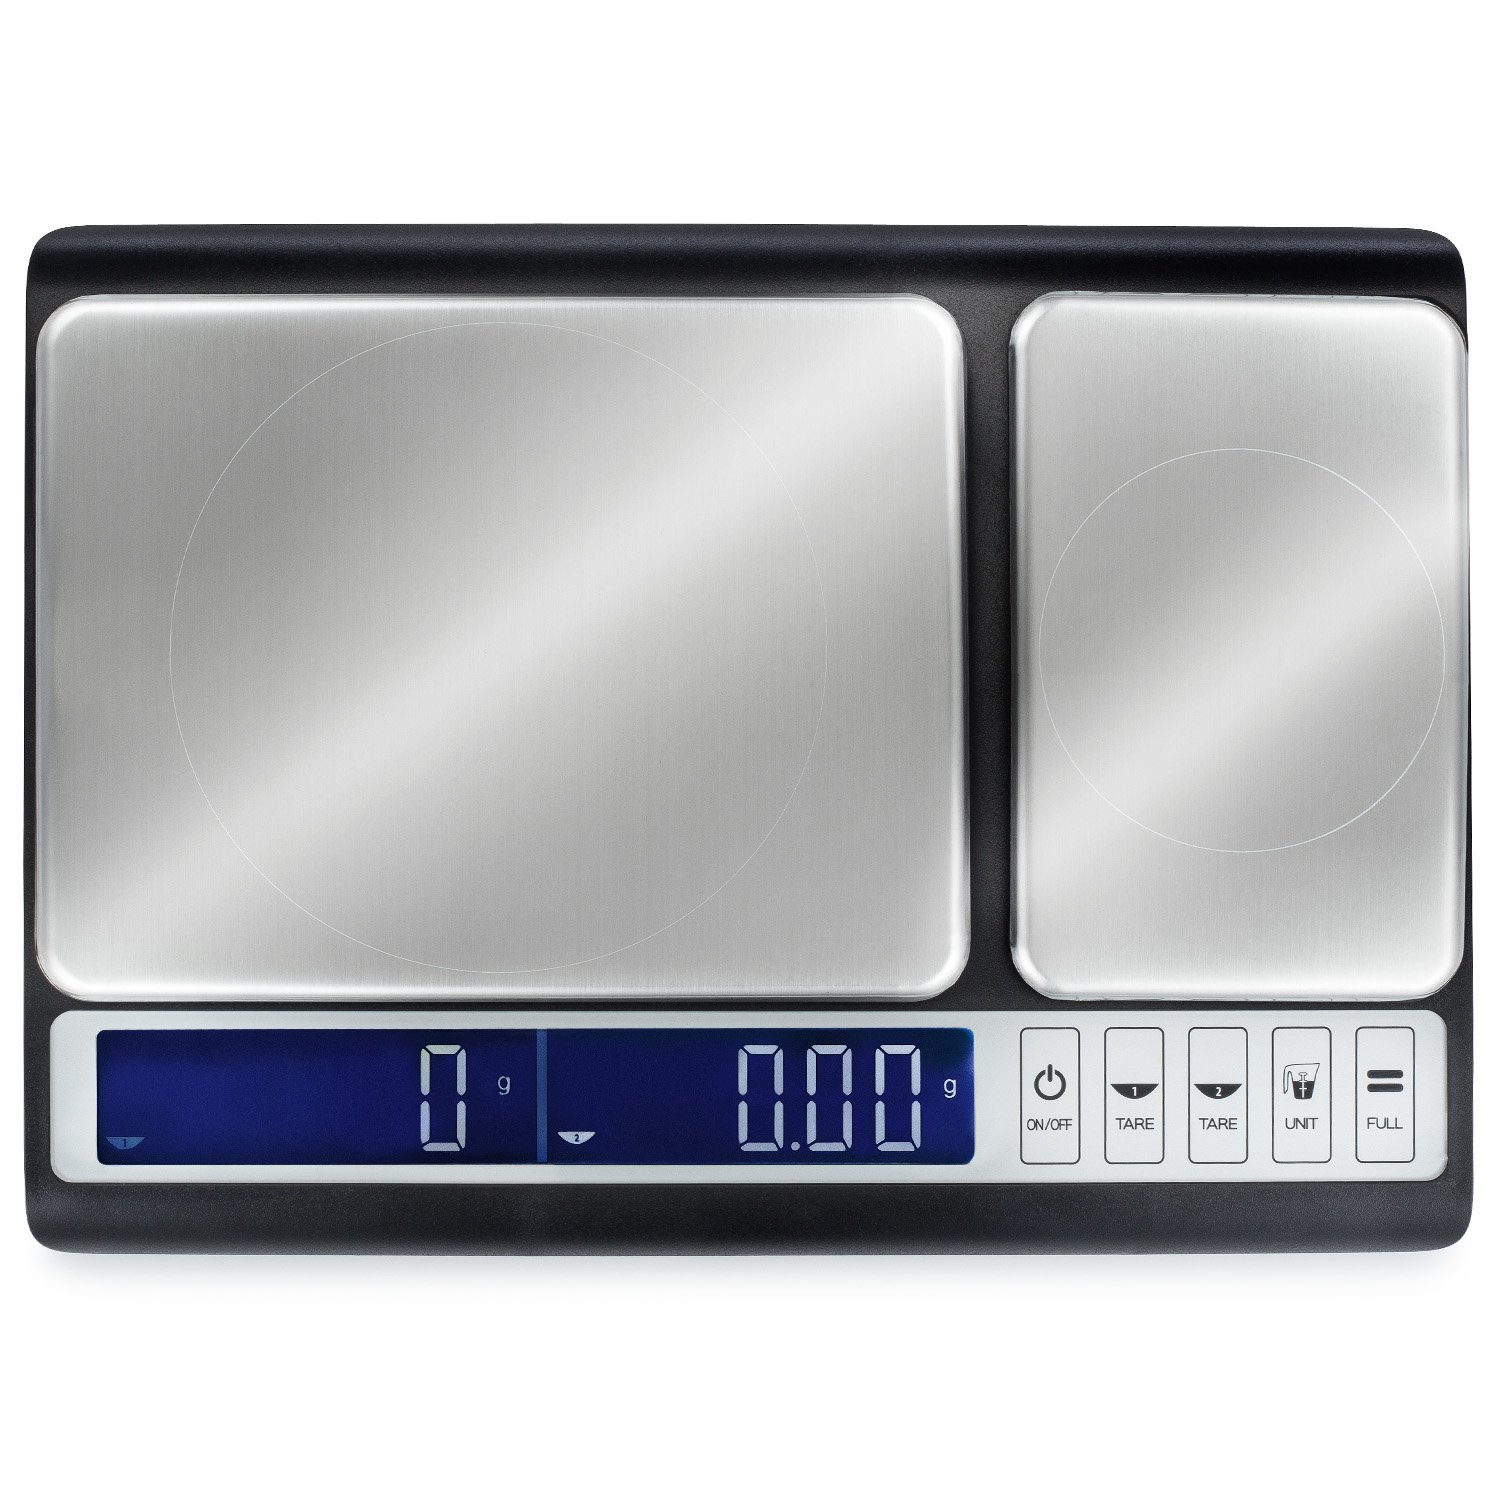 Smart Weigh Culinary Kitchen Scale